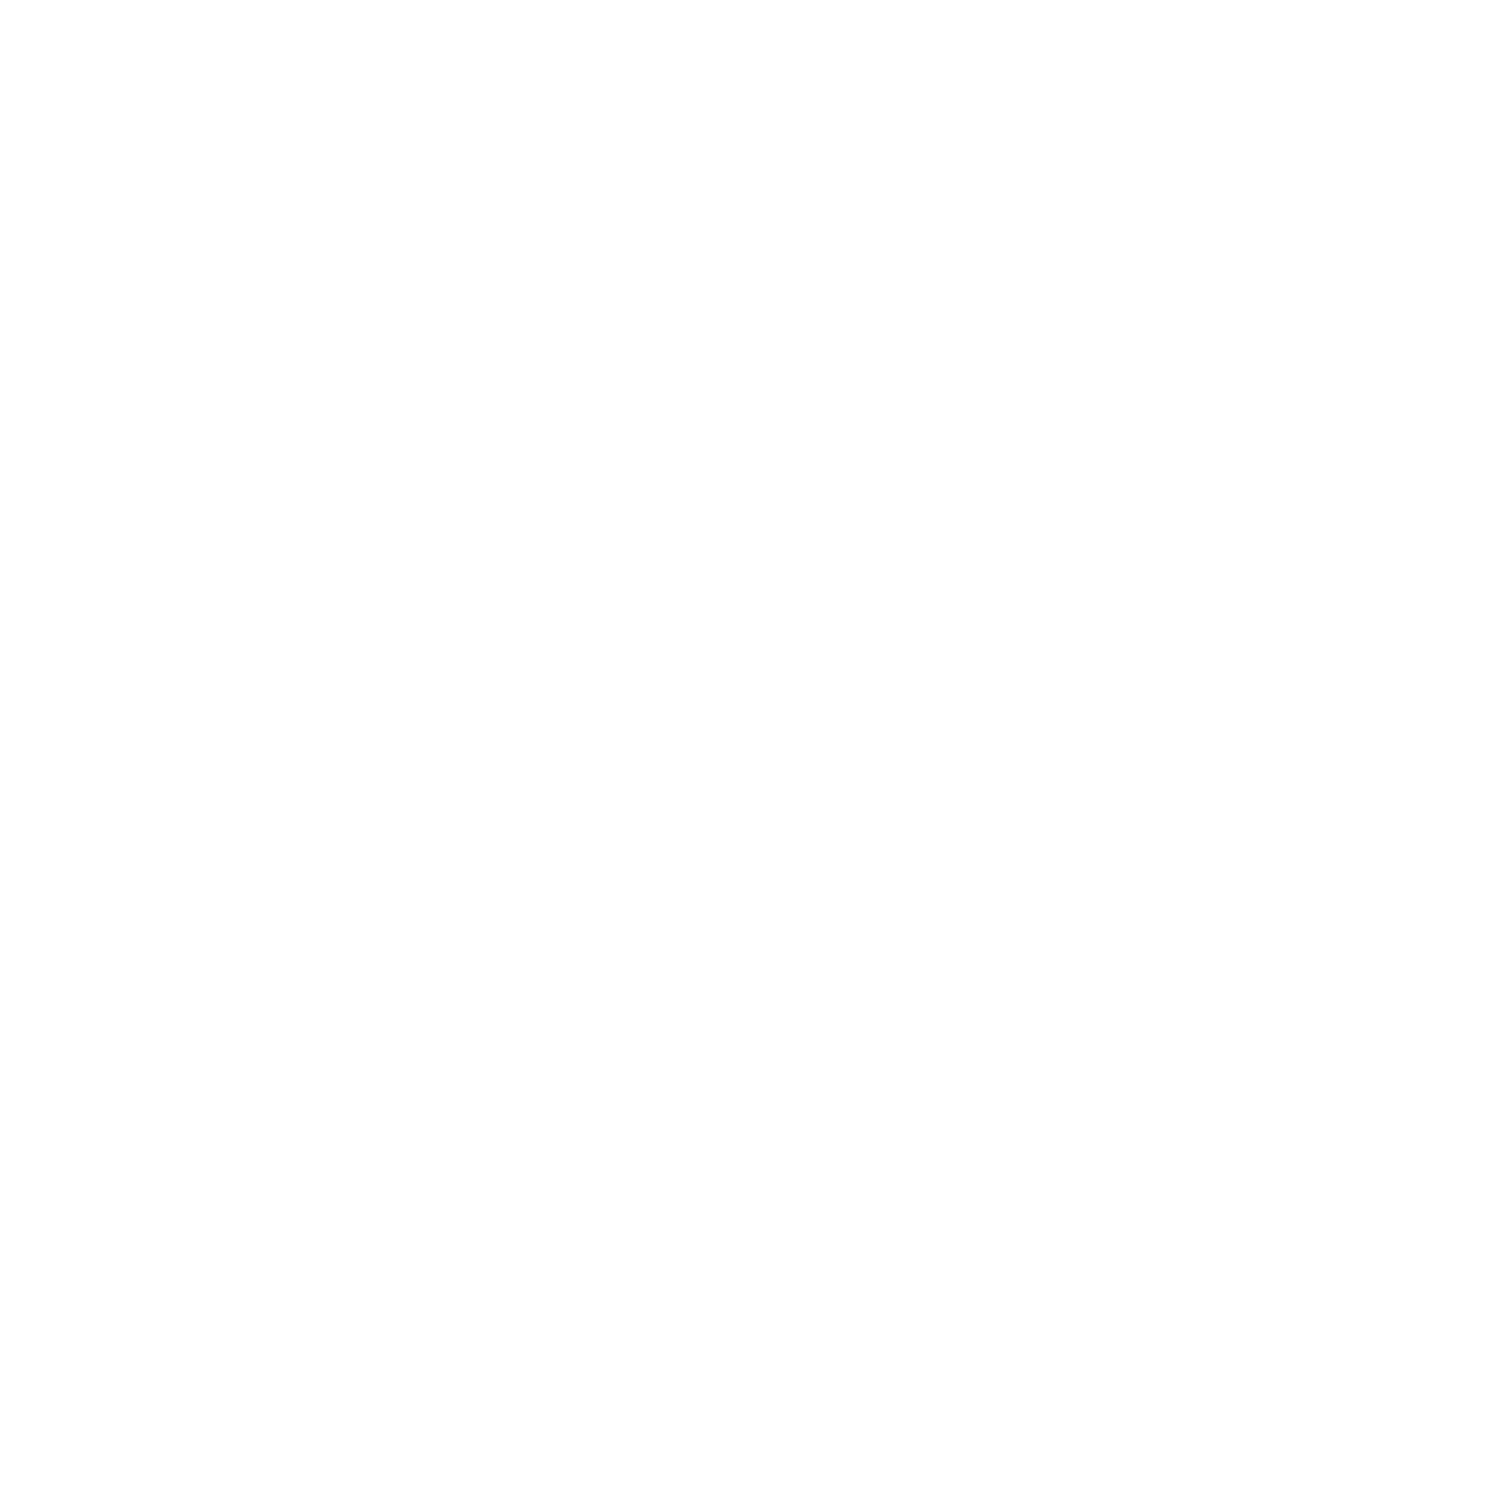 Bakers Lane